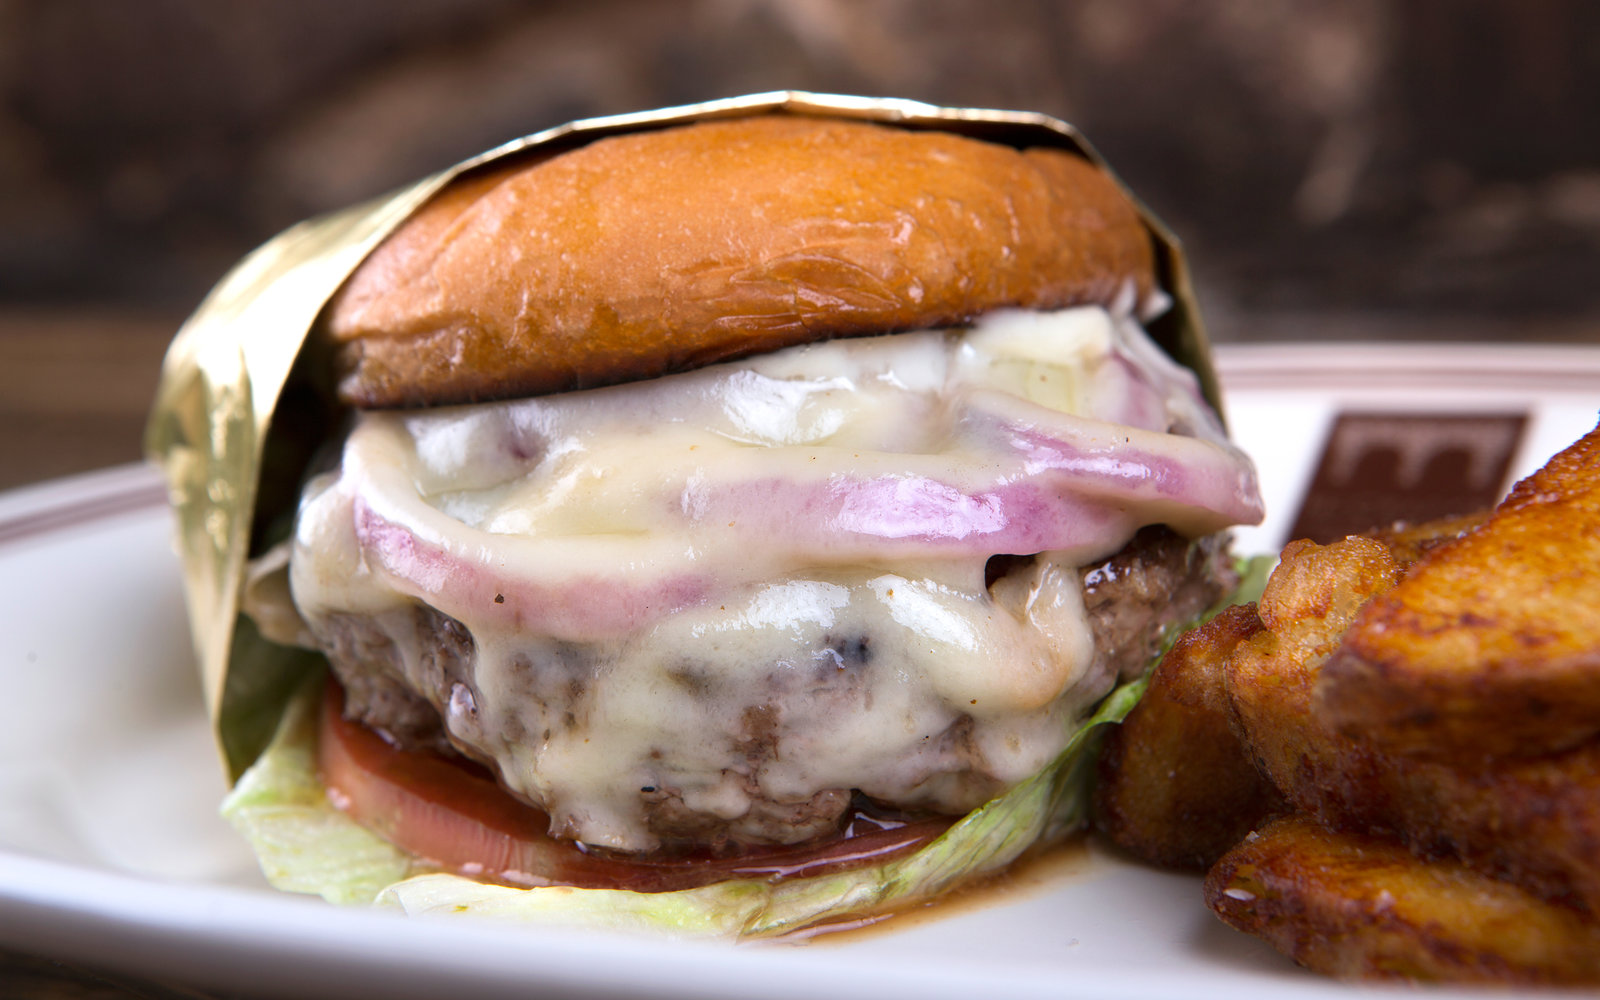 The 5 Building Blocks of the Perfect Burger, According to Sean Brock